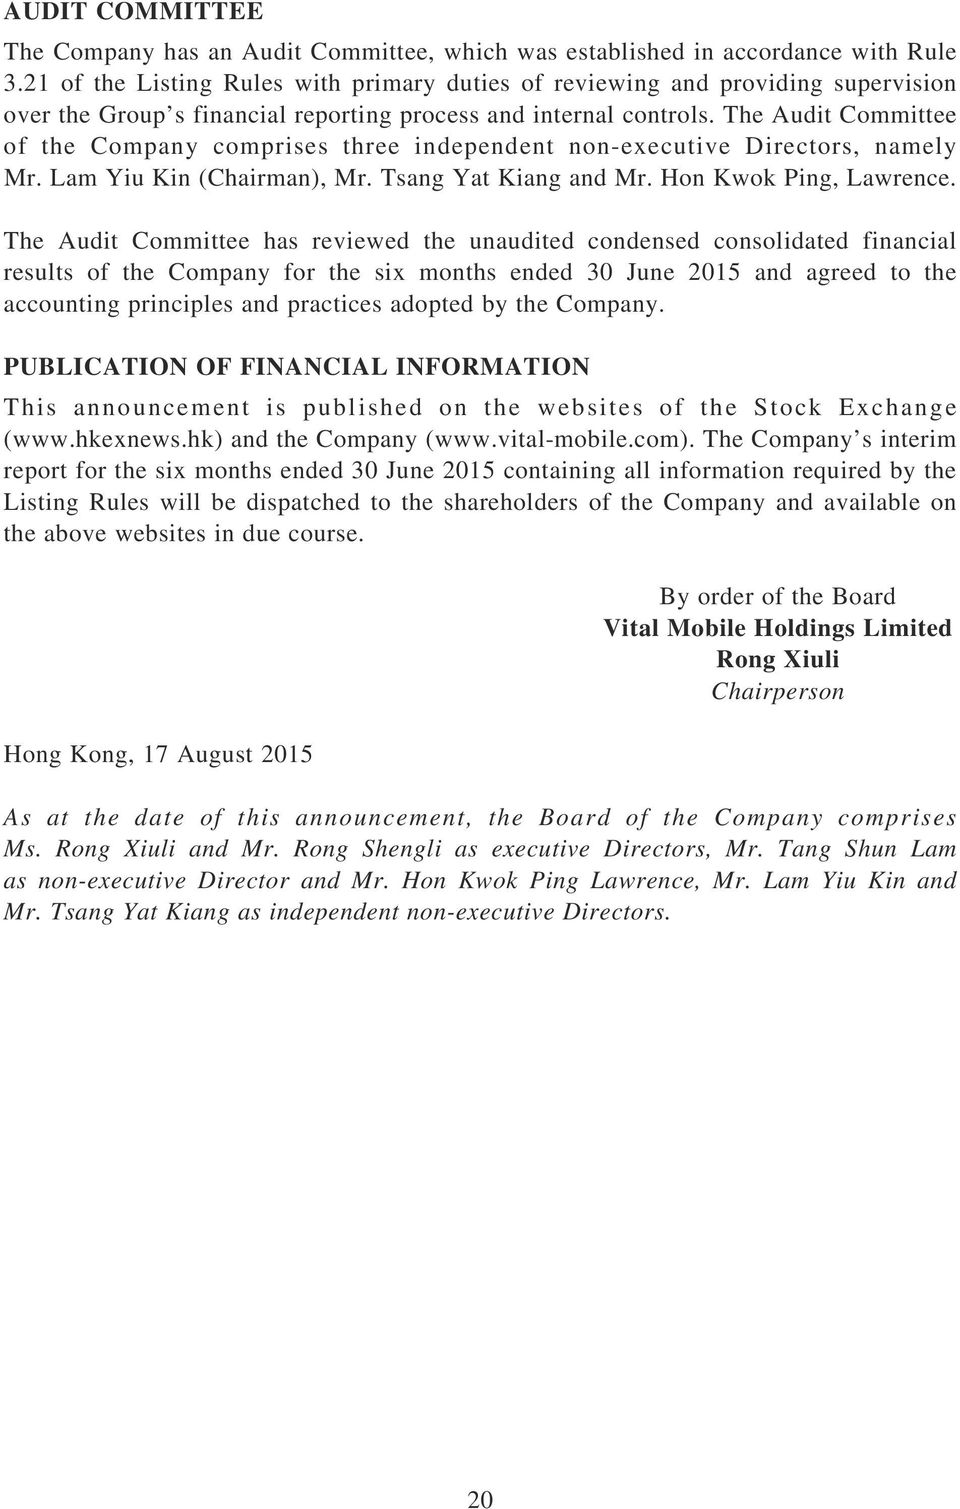 The Audit Committee of the Company comprises three independent non-executive Directors, namely Mr. Lam Yiu Kin (Chairman), Mr. Tsang Yat Kiang and Mr. Hon Kwok Ping, Lawrence.